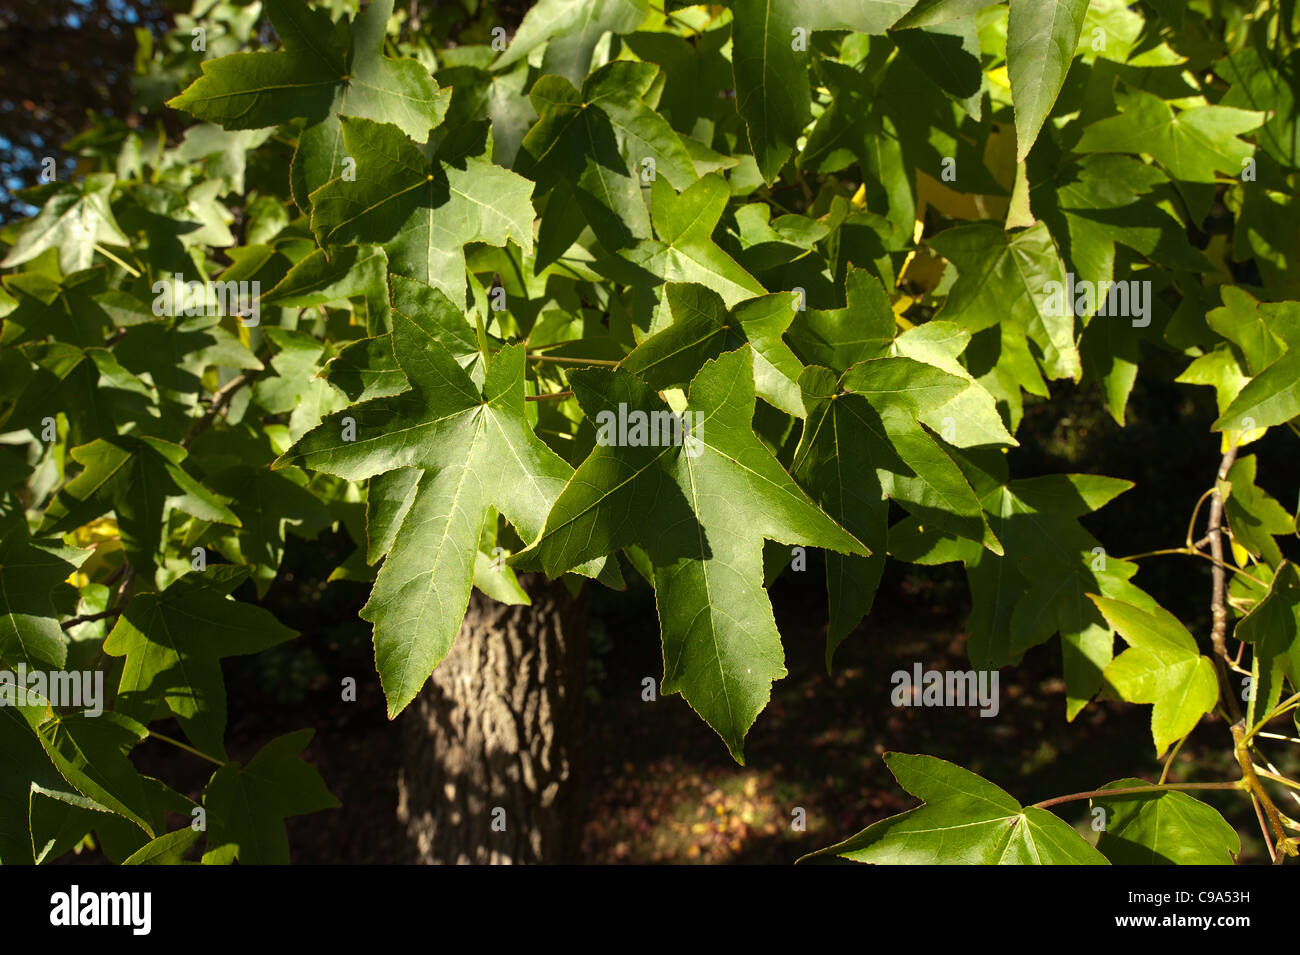 Five Pointed Star Shaped Leaves Stock Photos Amp Five